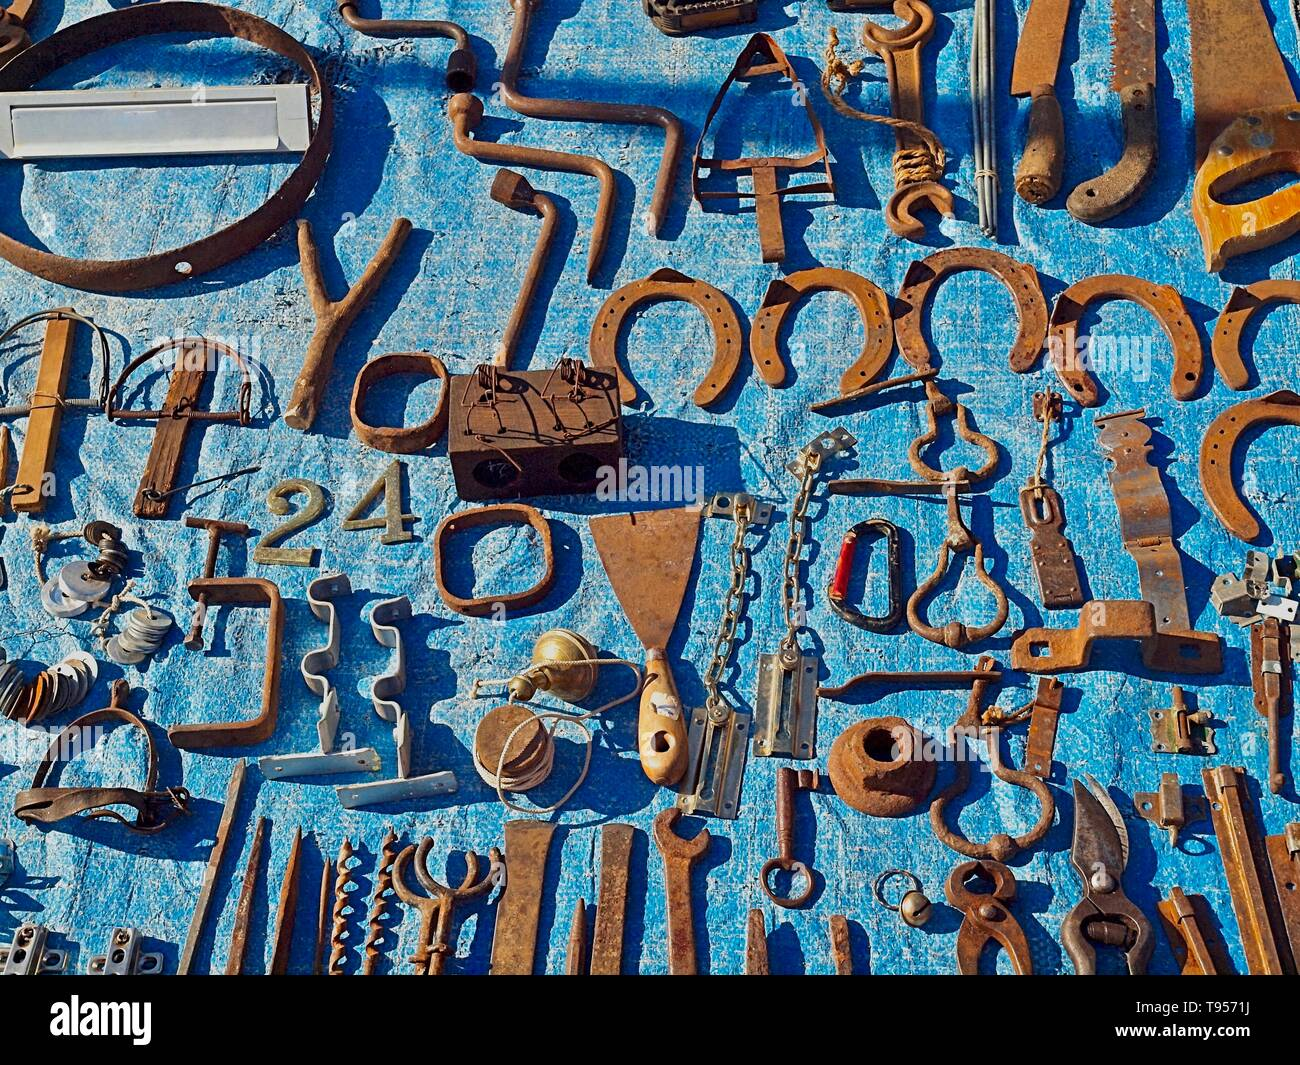 Iron tolls and horseshoes at a flea market - Stock Image